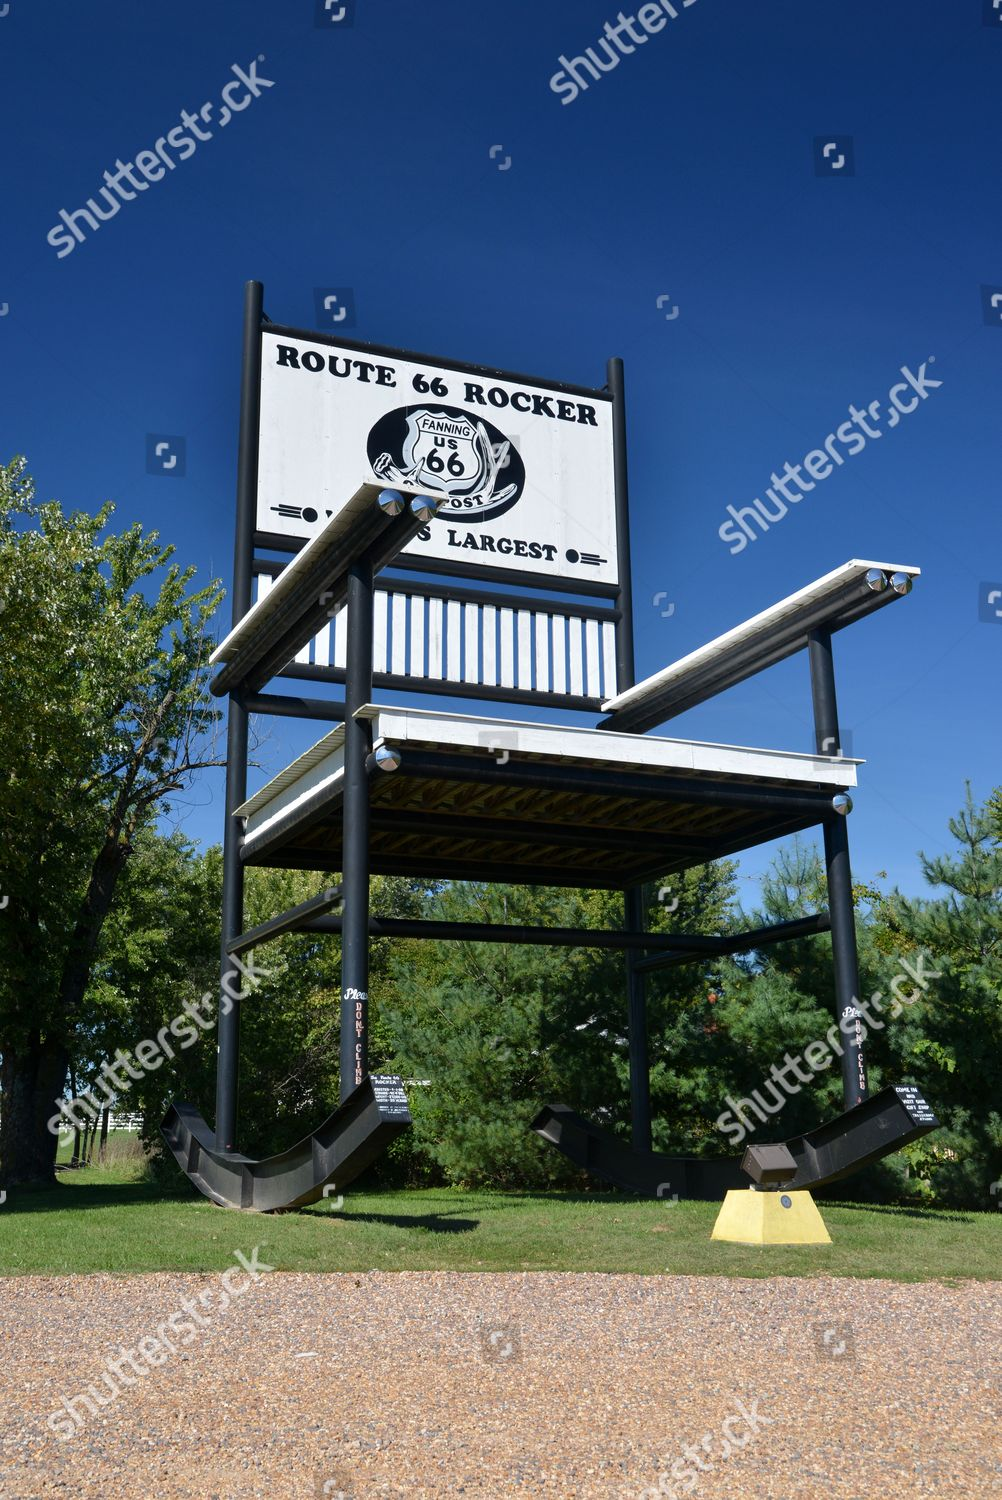 Peachy Worlds Largest Rocking Chair On Route 66 Editorial Stock Alphanode Cool Chair Designs And Ideas Alphanodeonline